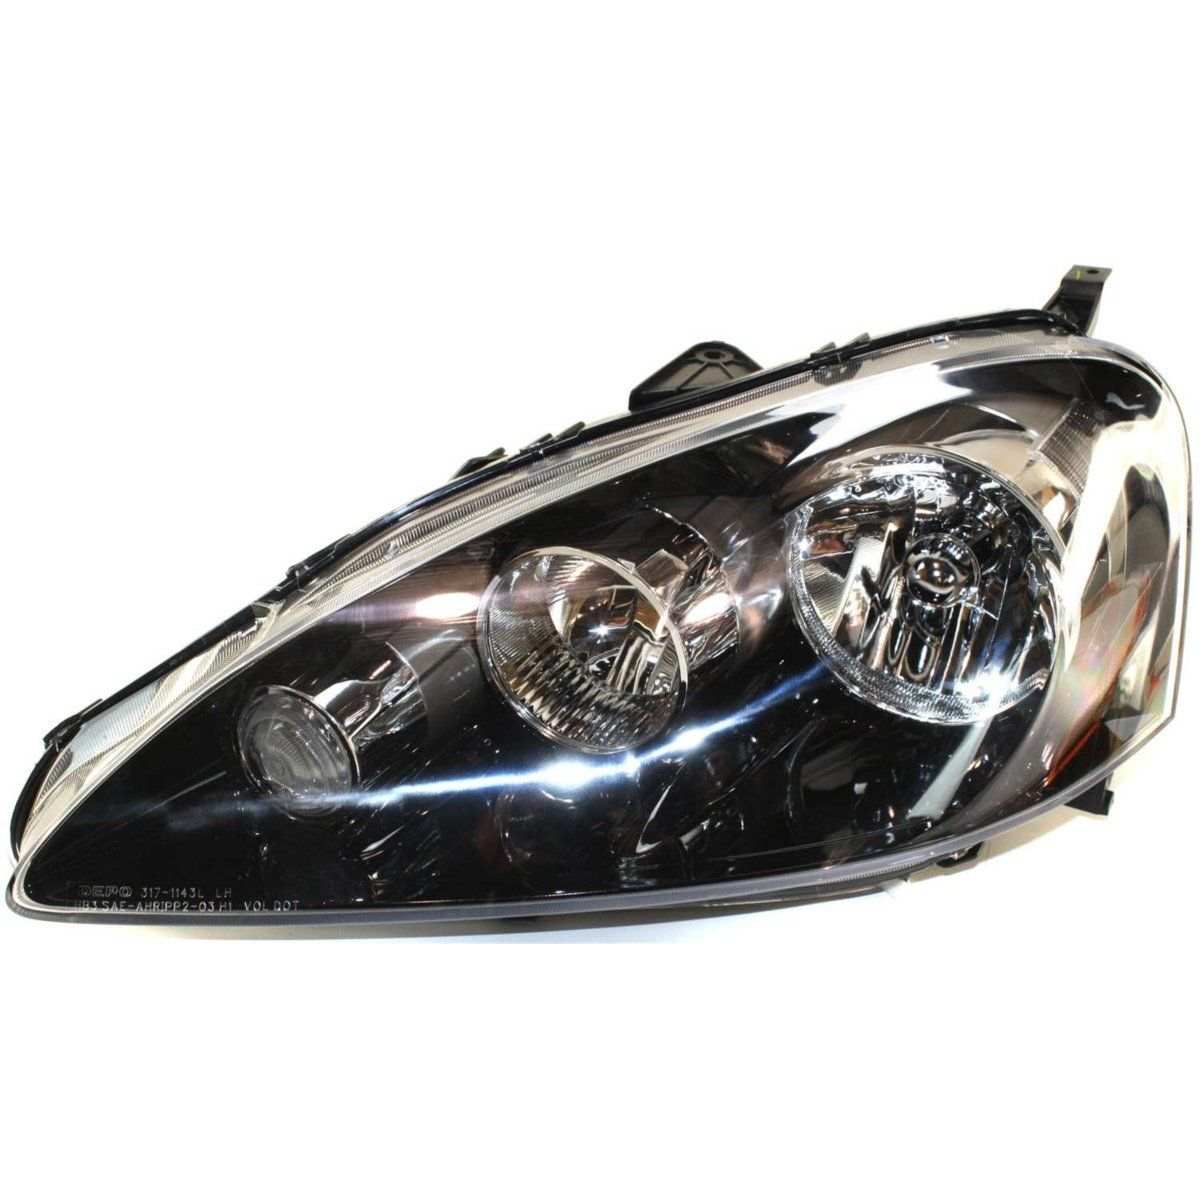 Headlight For 2005-2006 Acura RSX Driver Side